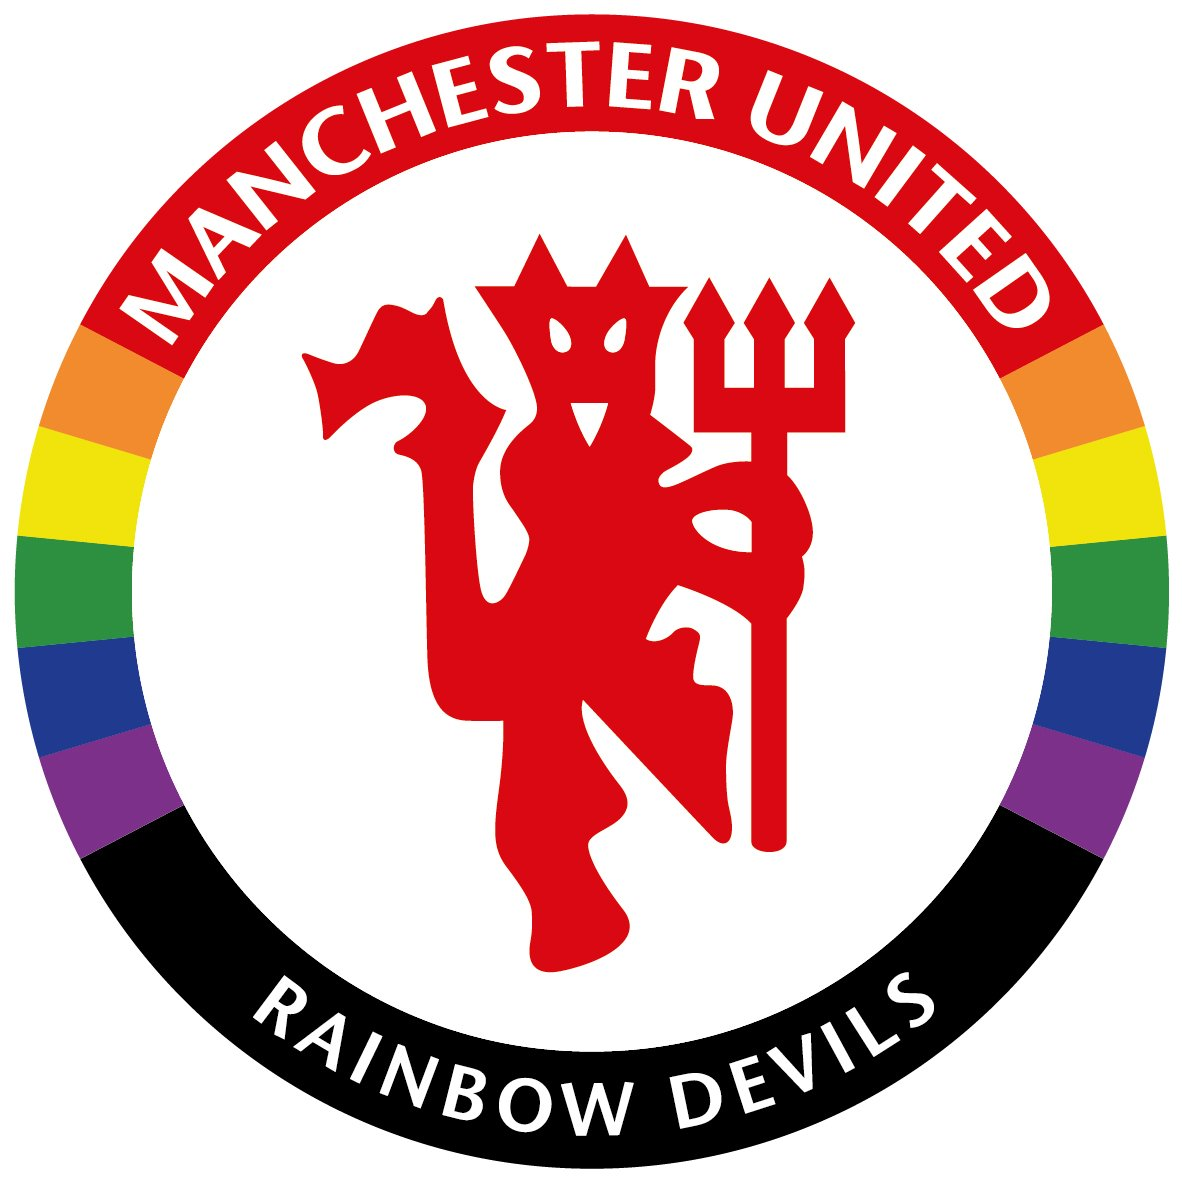 It's official! Really exciting to hear about the launch of #TeamPride partner @ManUtd's LGBT Supporters Group @RainbowDevils! #allredallequal #MakeSportEveryonesGame #RainbowLaces